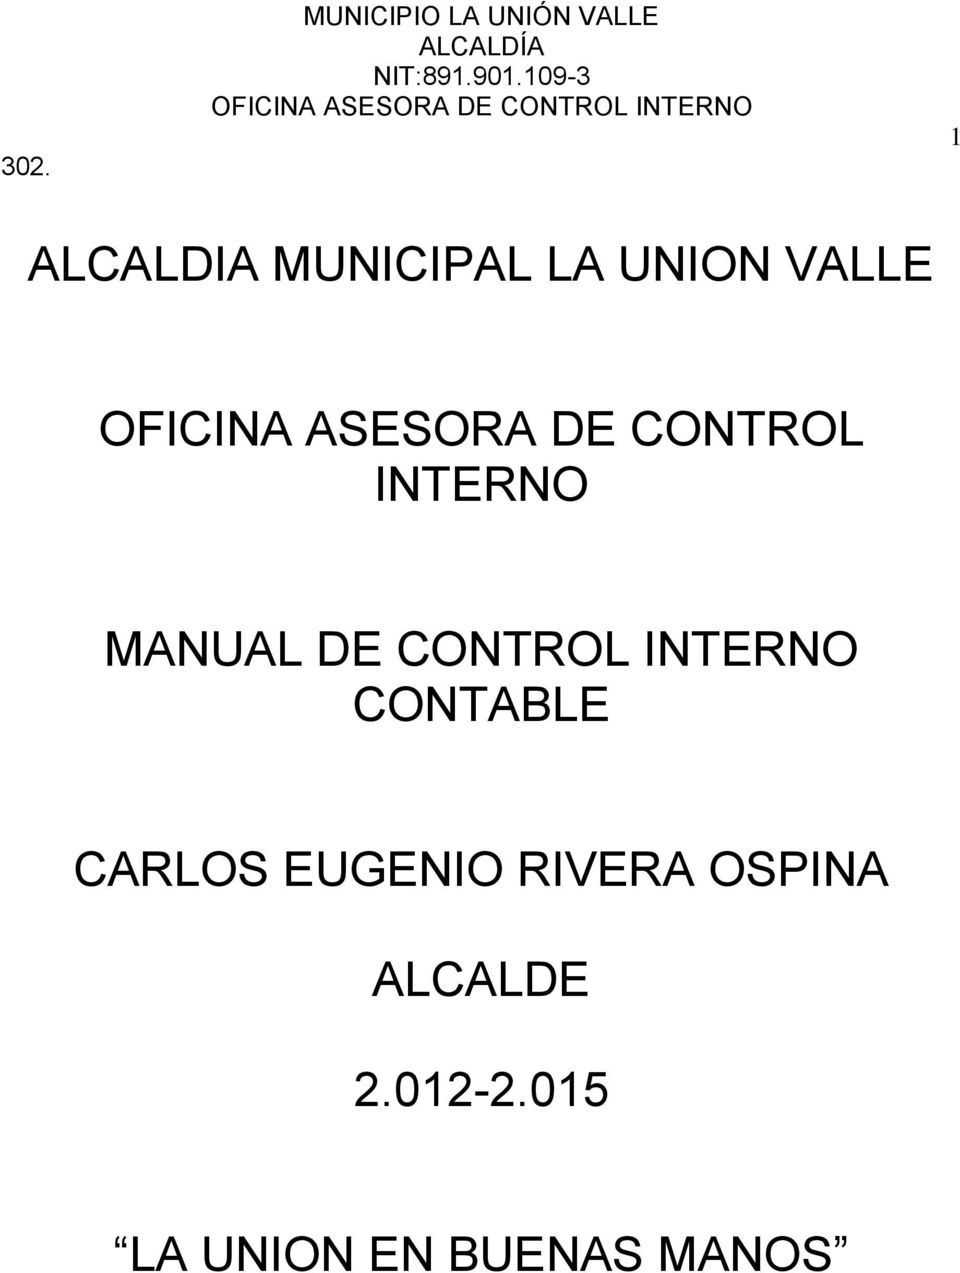 MANUAL DE CONTROL INTERNO CONTABLE CARLOS EUGENIO